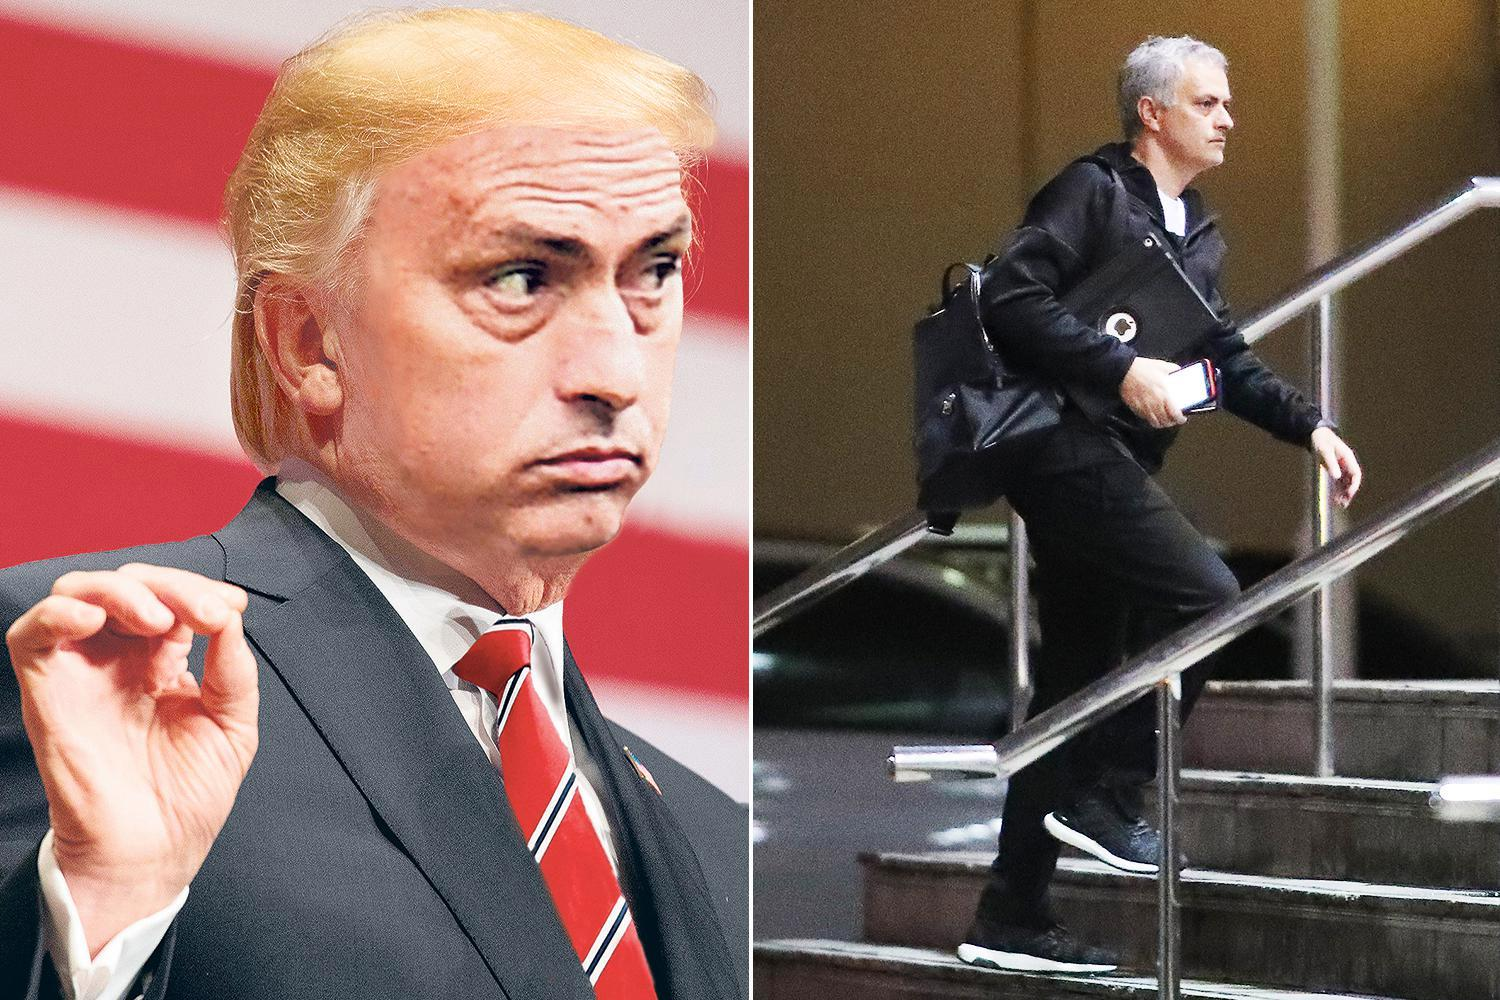 Jose Mourinho was in full Donald Trump mode as he dismissed talk of him quitting Manchester United as 'garbarge news'